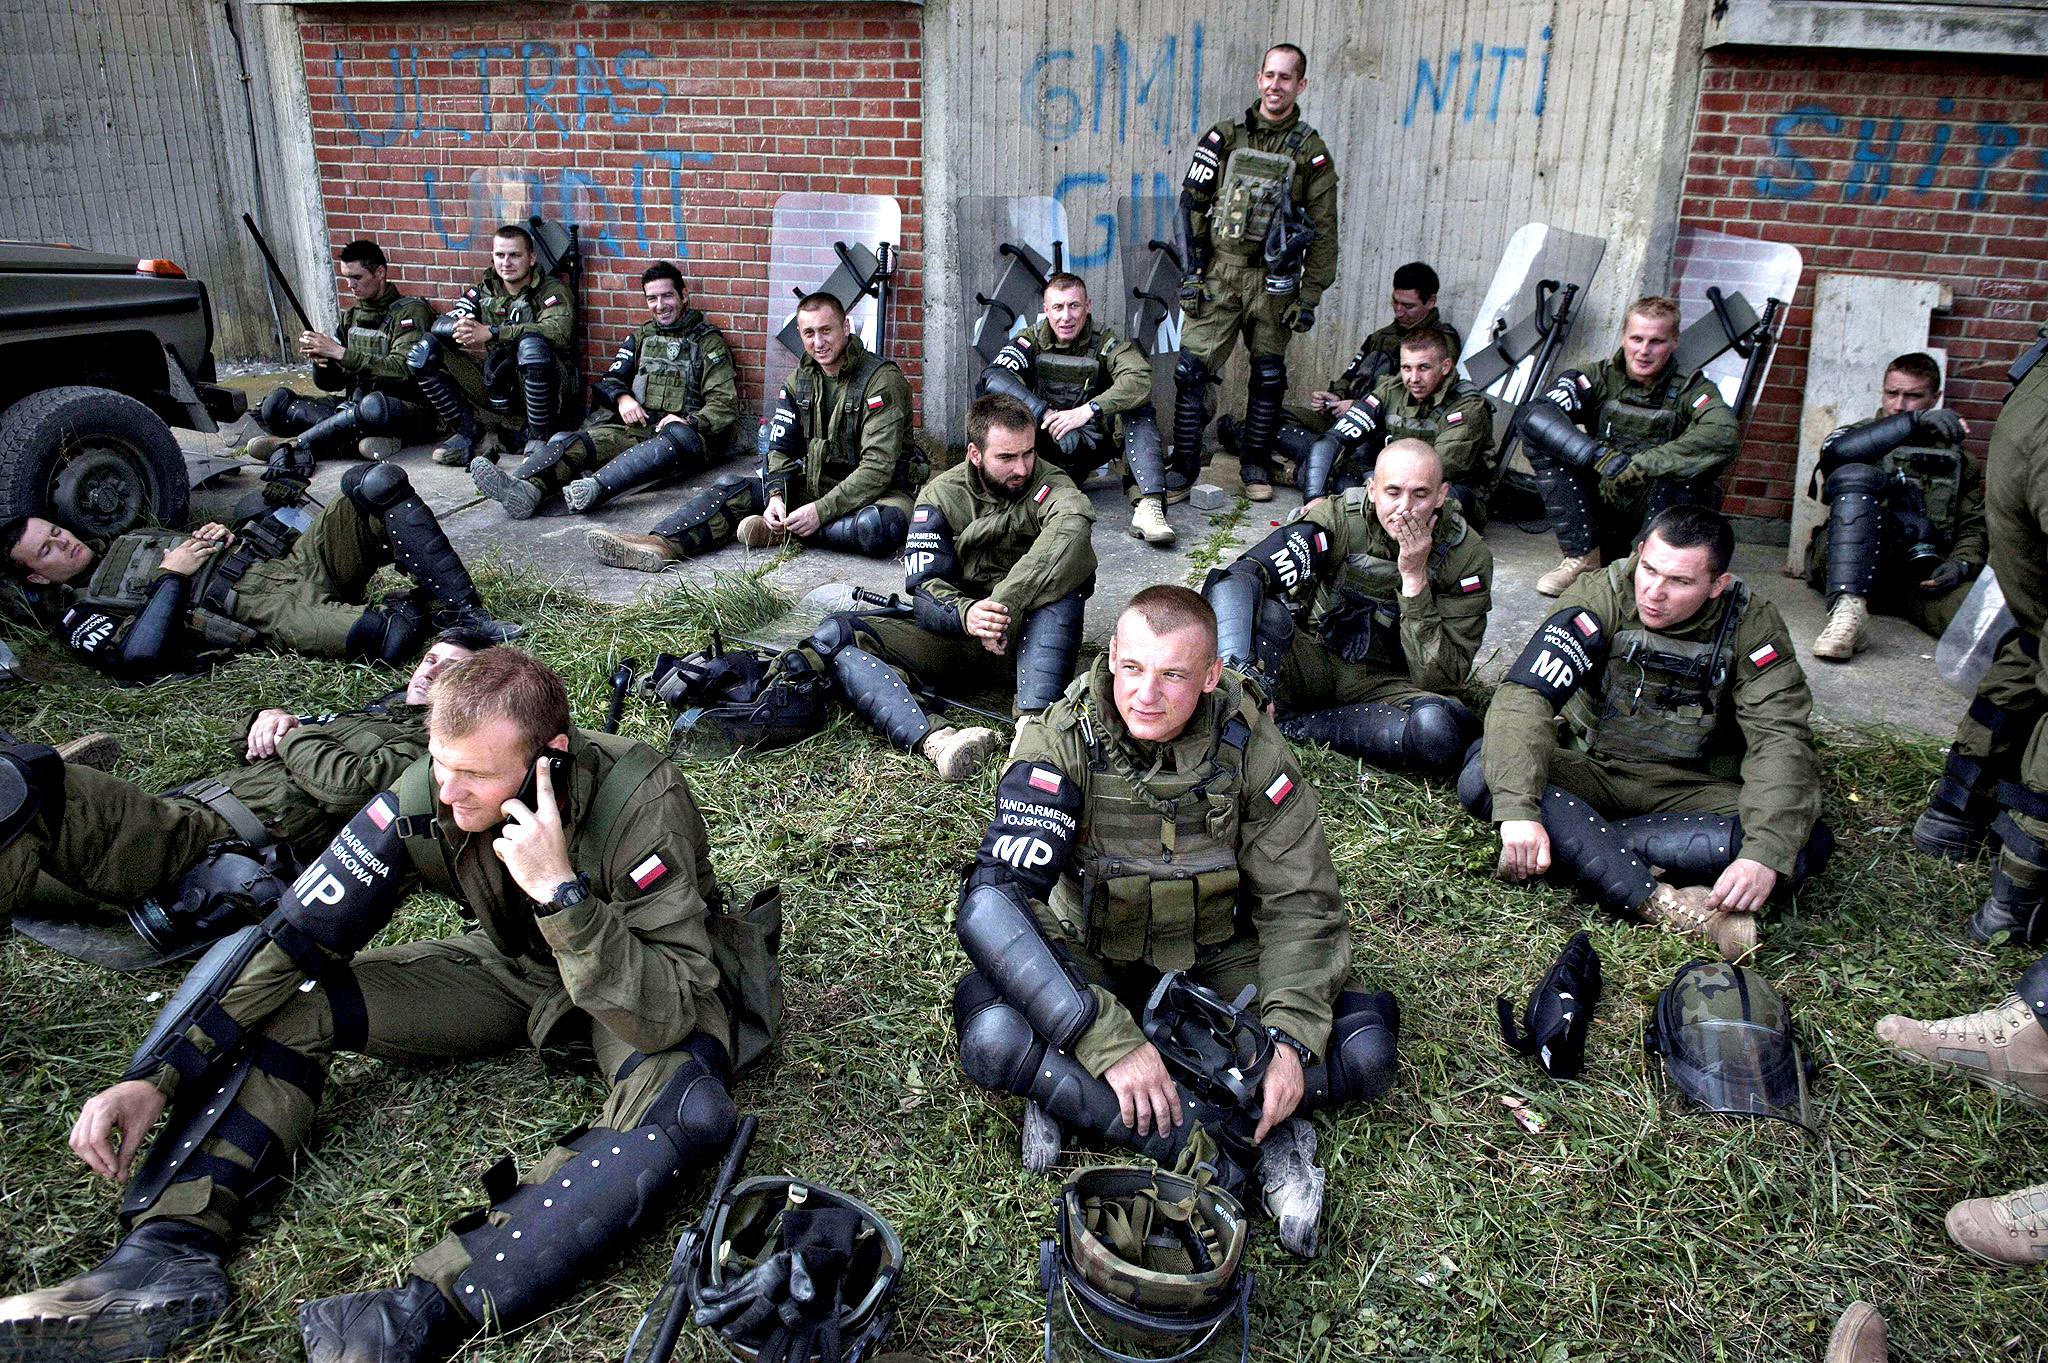 NATO-led Kosovo Force (KFOR) soldiers rest after taking part in a crowd and riot control exercise near the town of Ferizaj on August 29, 2014. Despite the deteriorating situation in the Middle East and Ukraine, NATO does not plan to reduce the number of its peacekeeping troops in Kosovo.